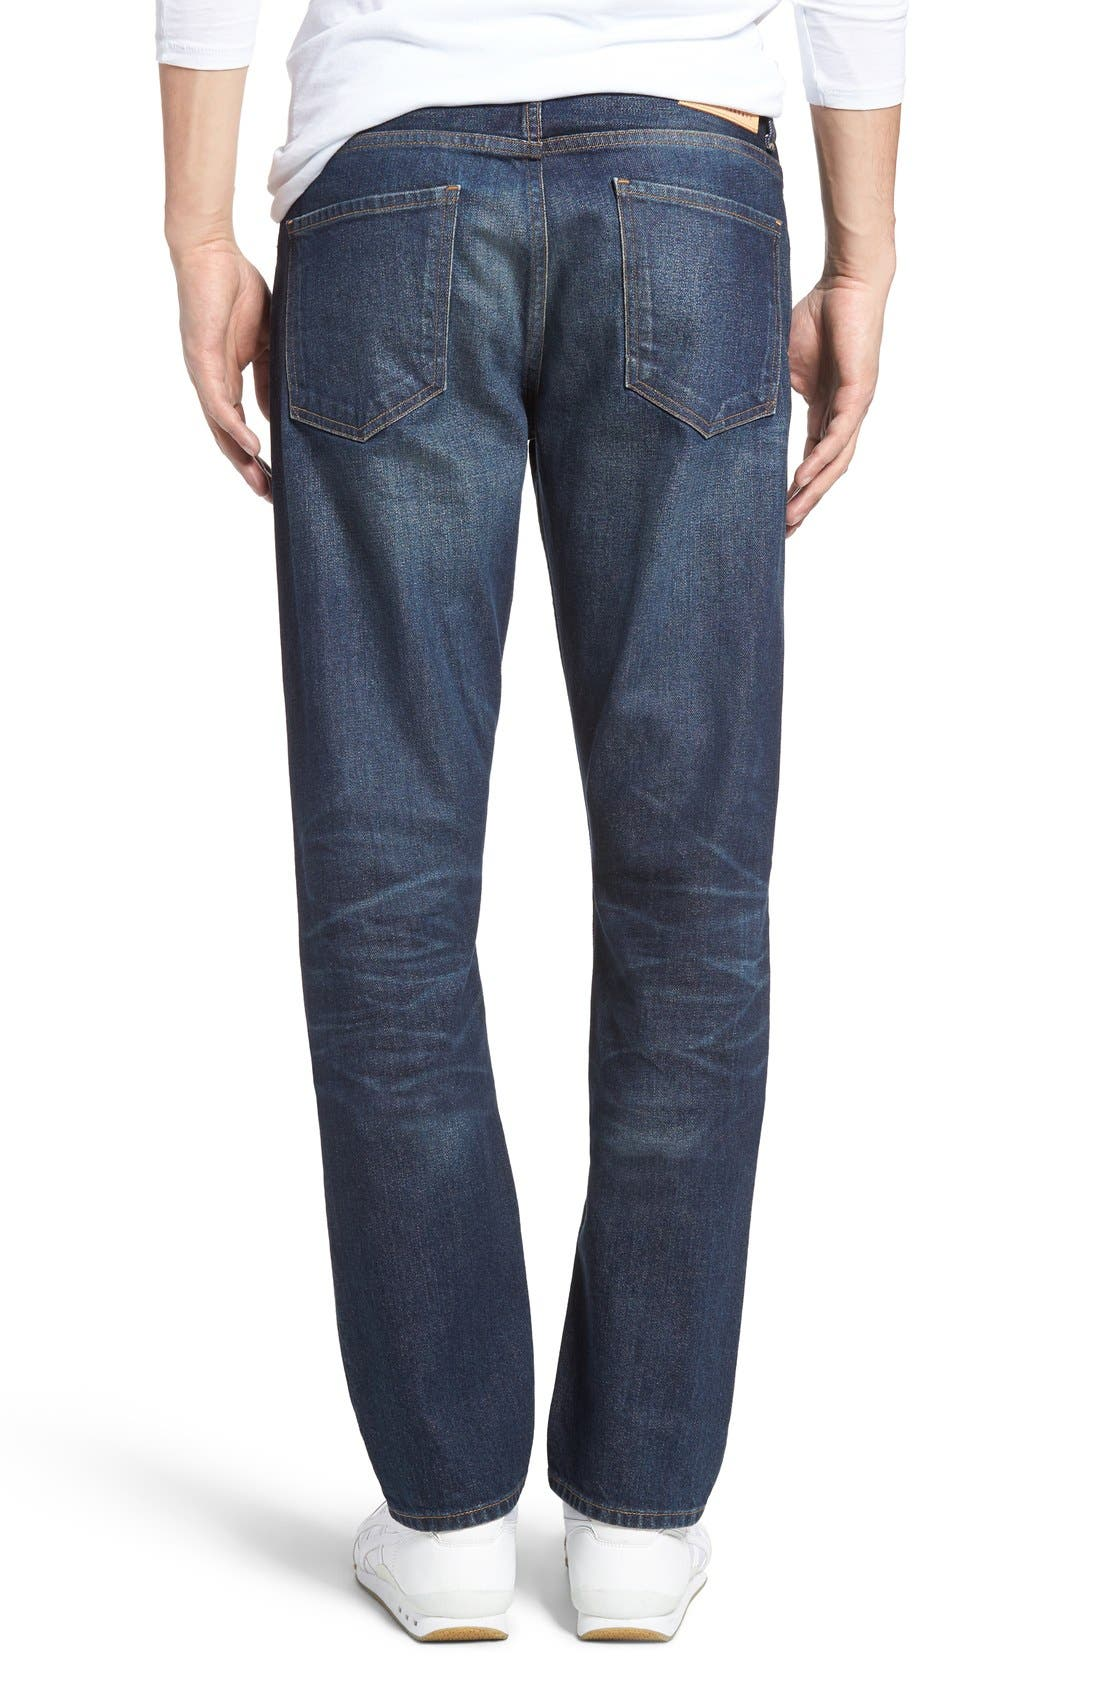 Bowery Slim Fit Jeans,                             Alternate thumbnail 2, color,                             Hesperia